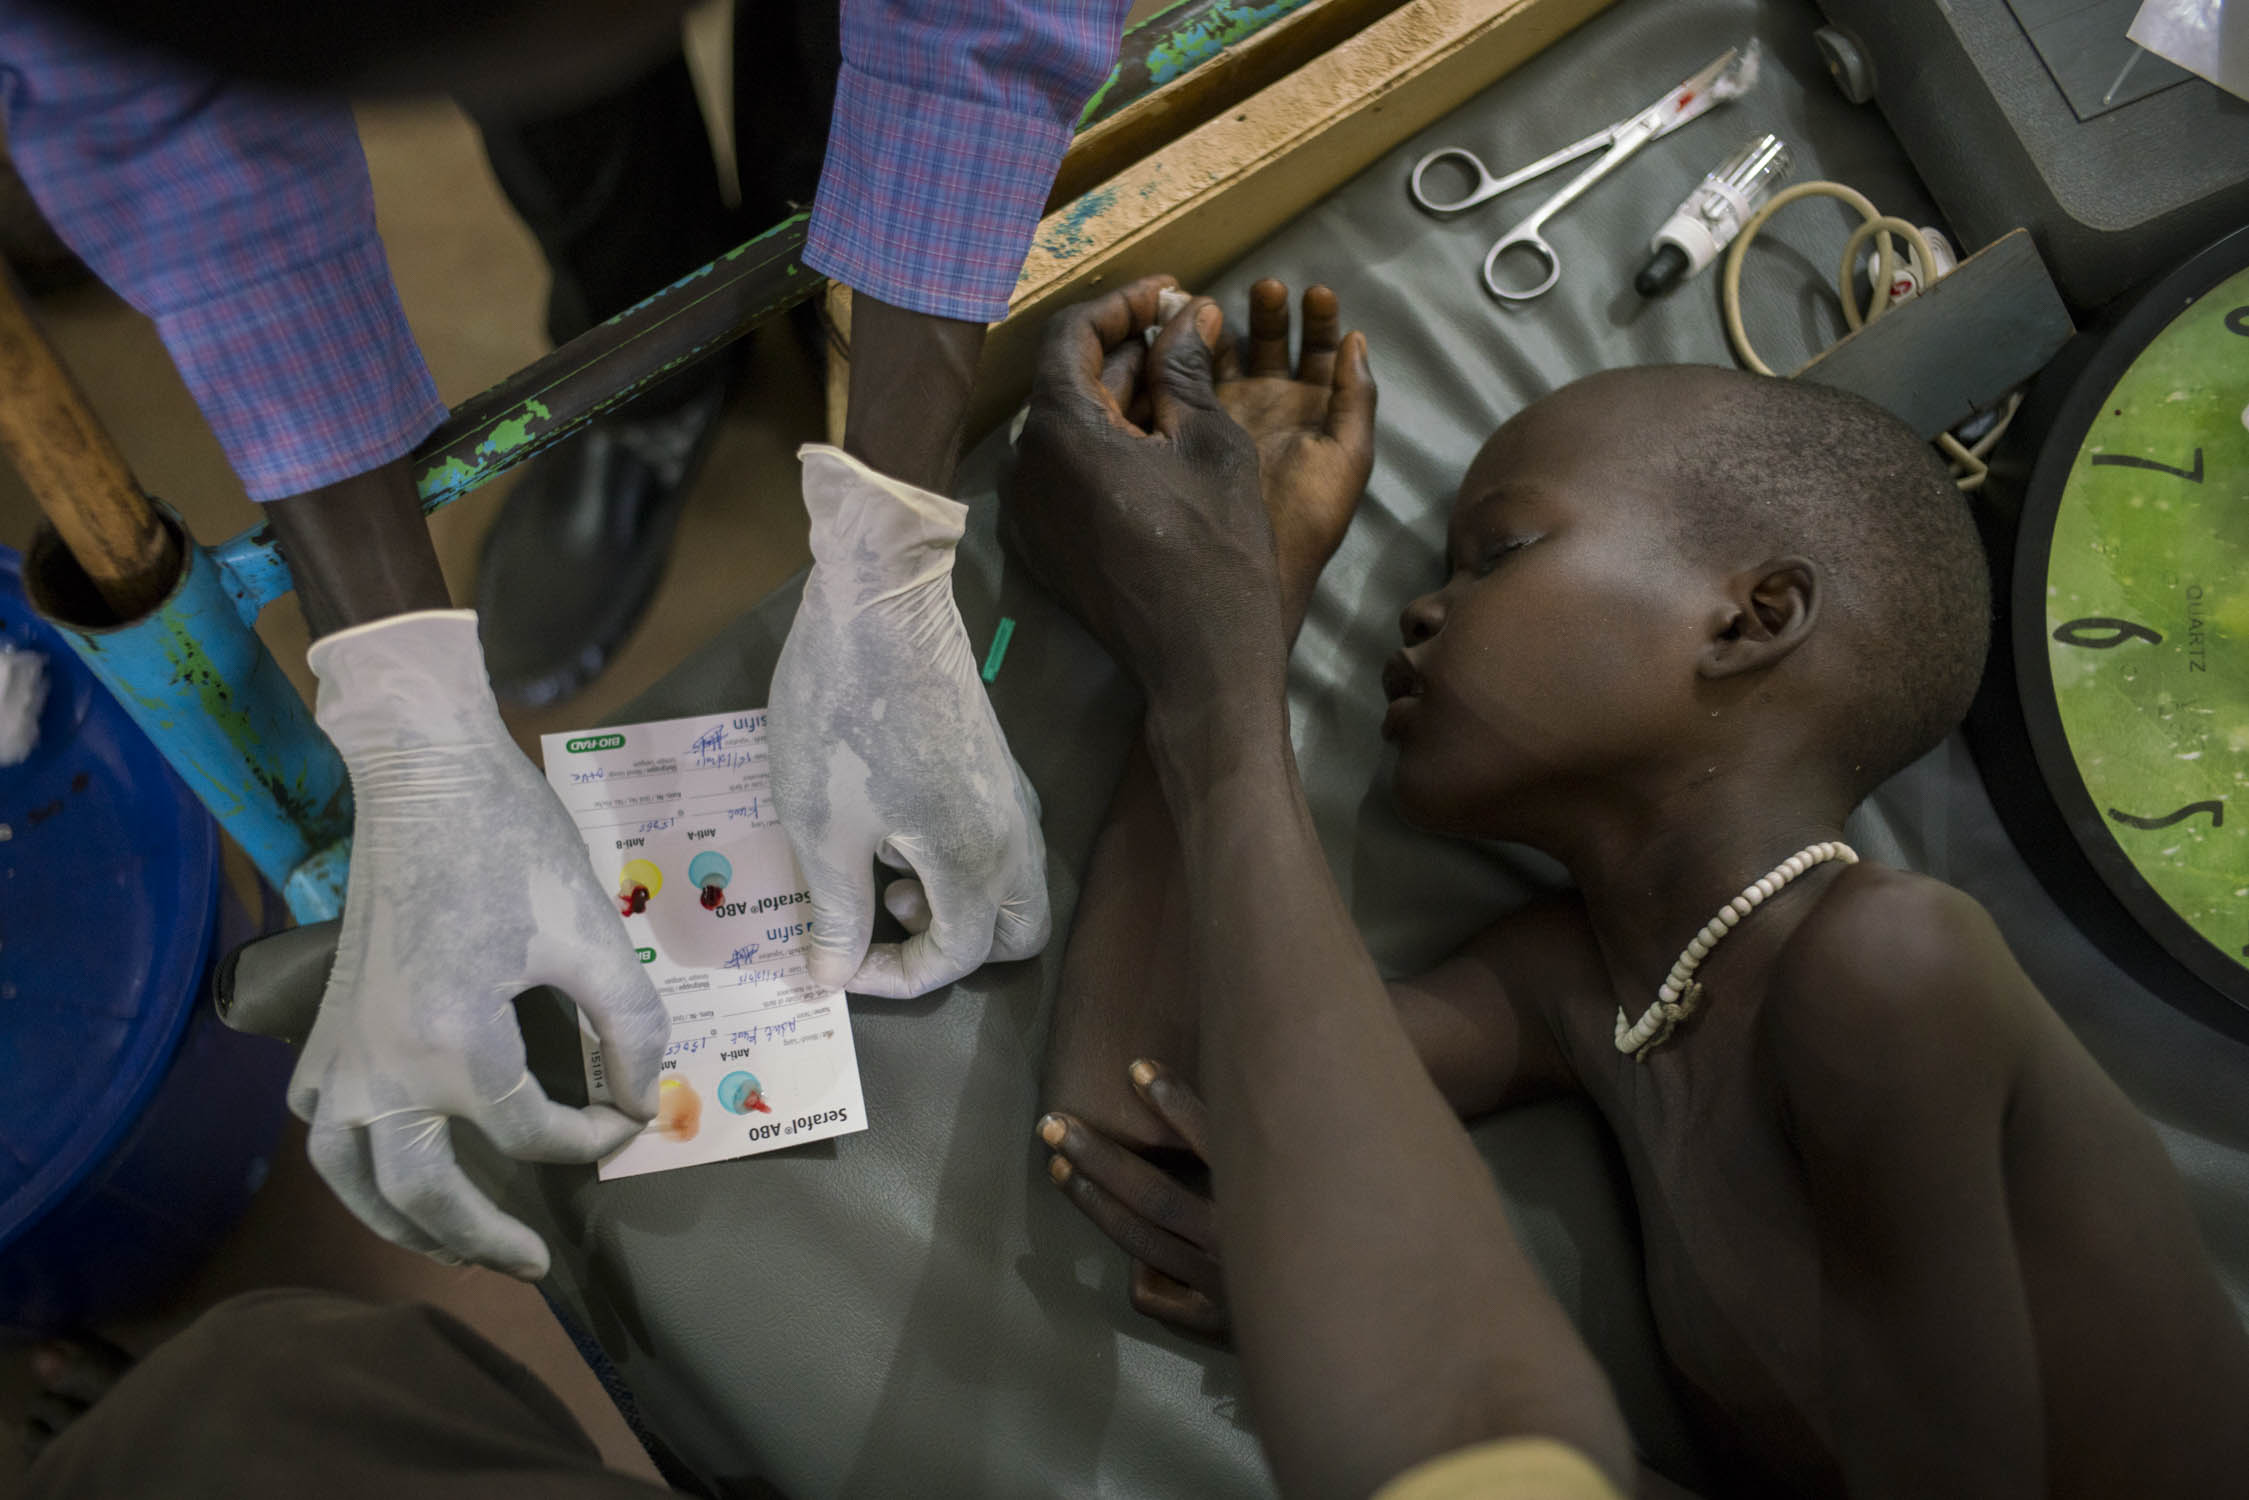 A nurse checks blood-type compatibility before administering a blood transfusion to Adut Chuor Kujal, 8, who is receiving treatment for cerebral malaria at an MSF hospital in Aweil city, South Sudan. Adut's father presses down on her fingertip that has just been pricked to obtain a blood sample. Adut's family lives in a remote rural village so she had been sick for several days before her father made the journey to Aweil. He had first taken her to a private clinic closer to their home but they had no malaria drugs in stock. South Sudan is host to one of the deadliest conflicts in the world, yet in 2015, malaria killed more people than bullets. Across the country, 2.28 million cases of malaria were reported. Aweil, Northern Bahr el Ghazar state, South Sudan. October 15, 2015